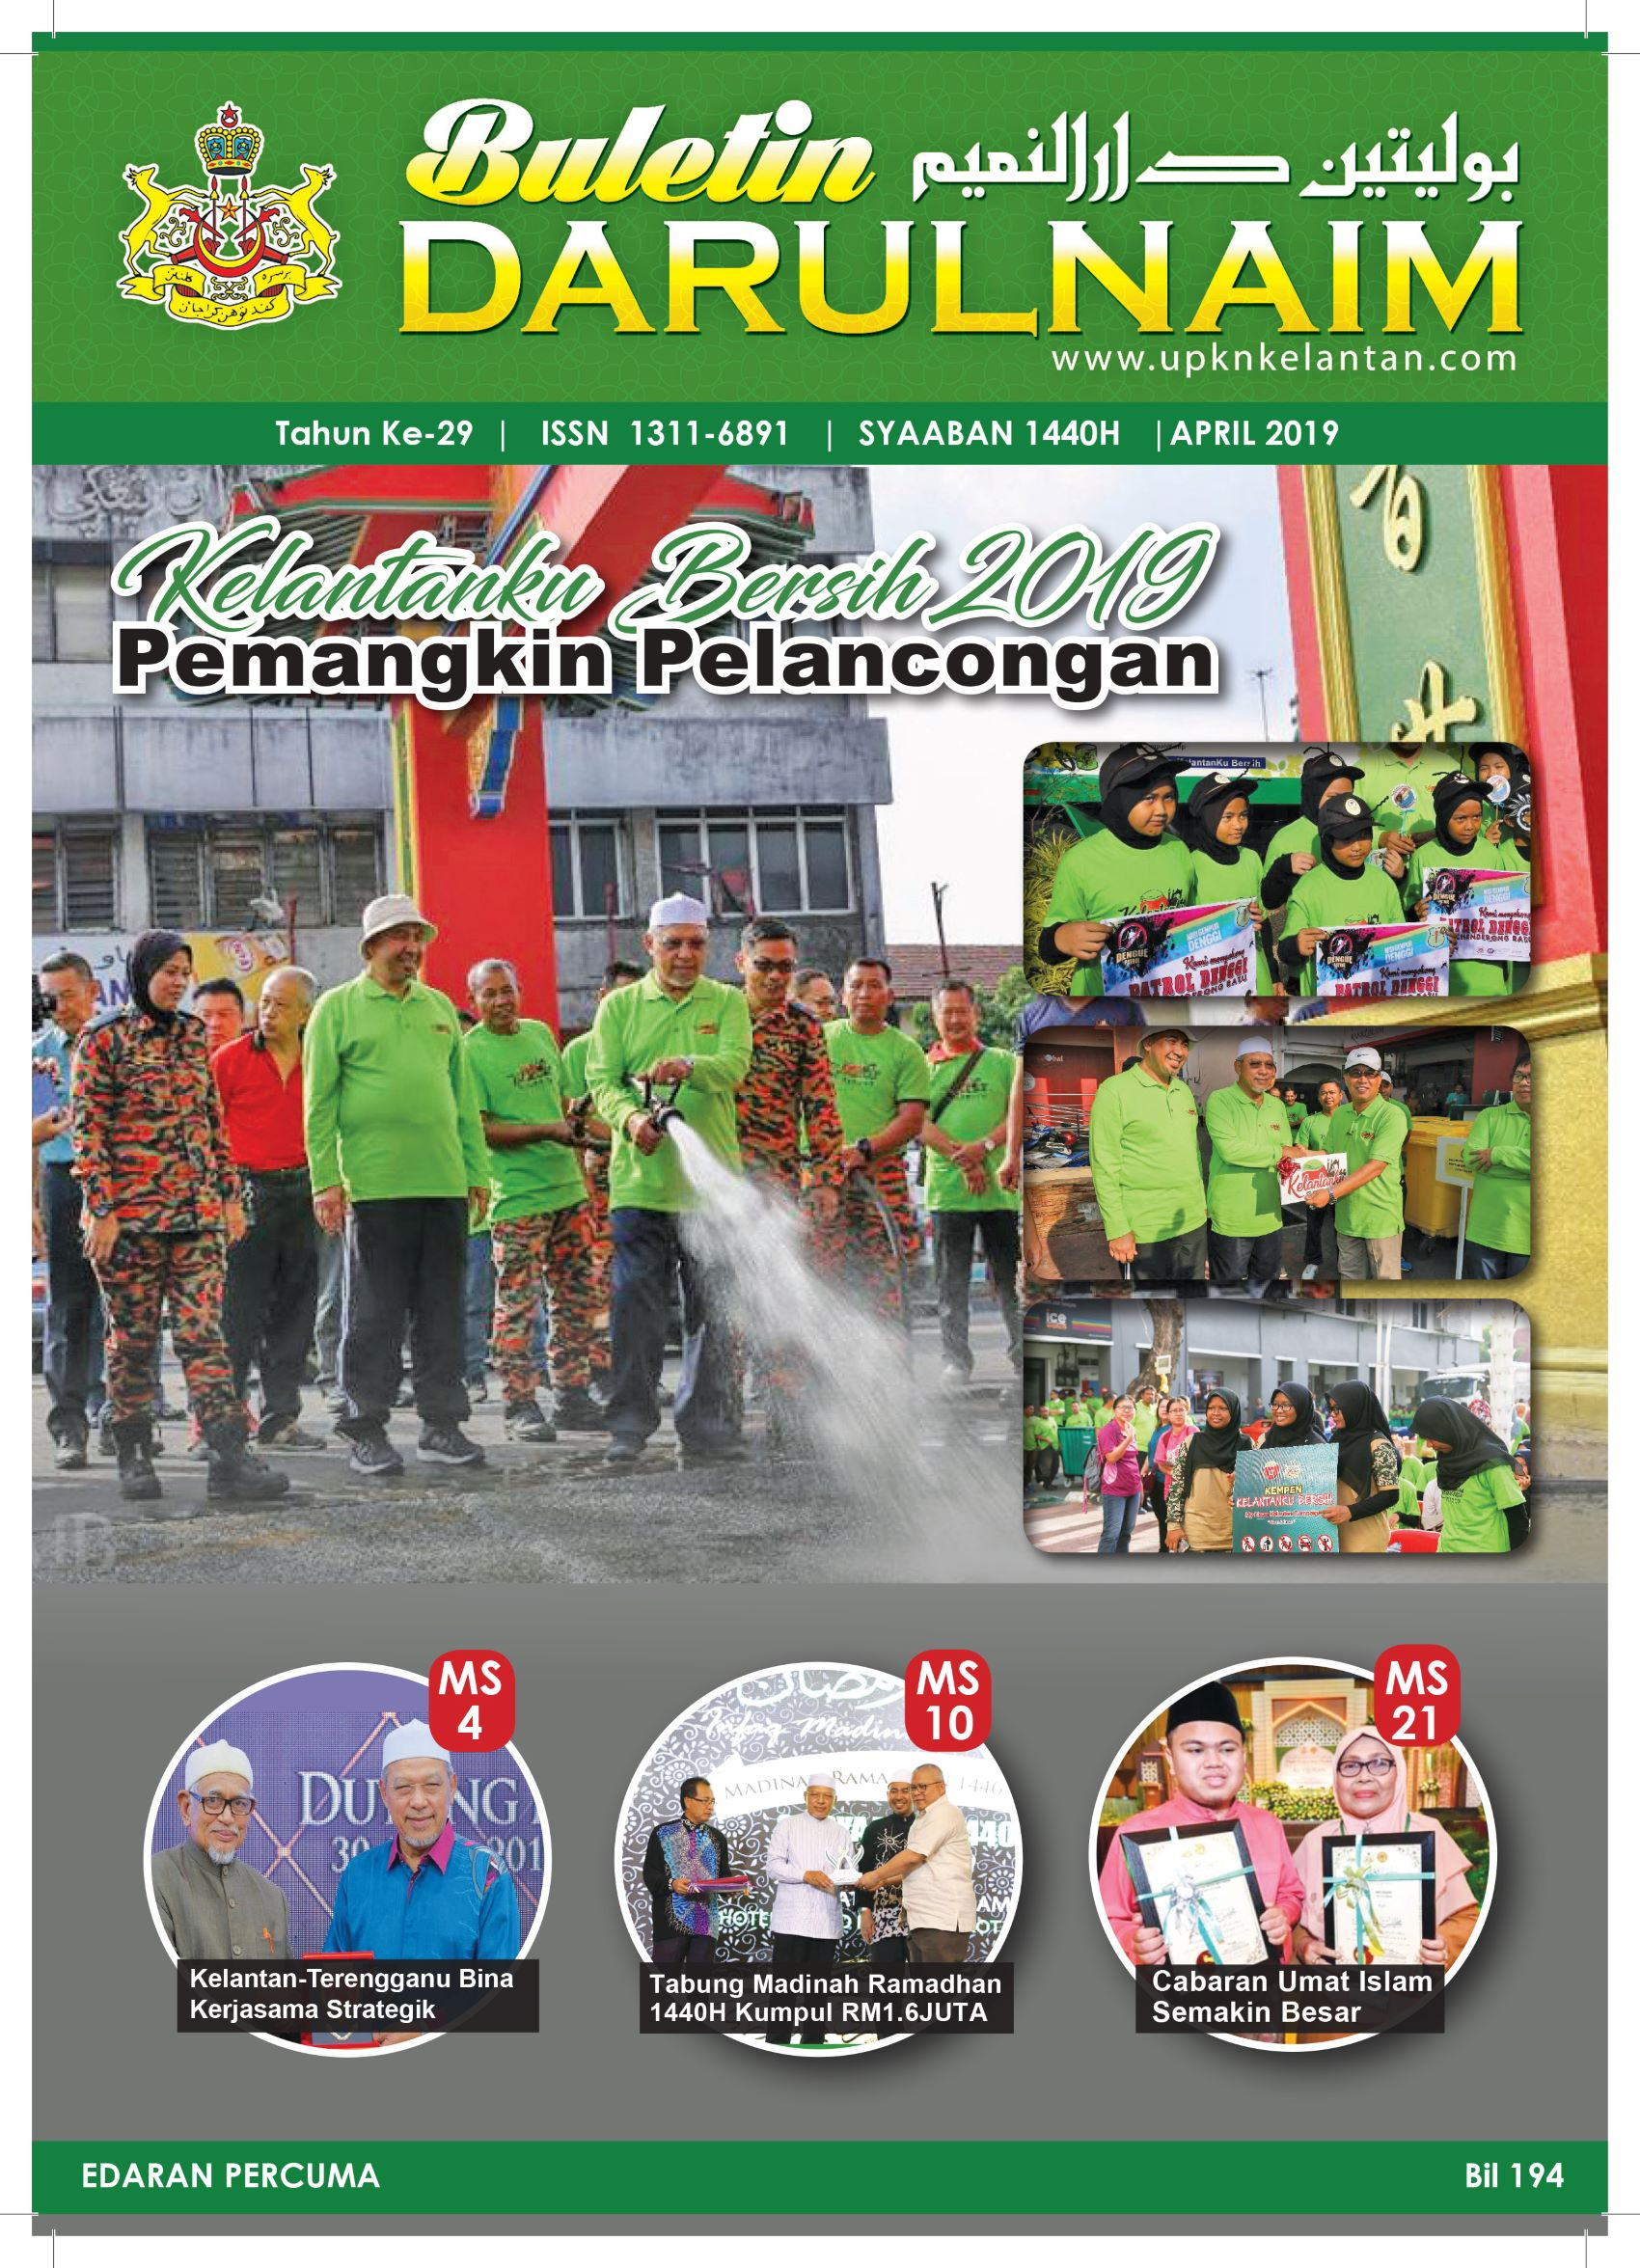 Buletin Darulnaim April 2019